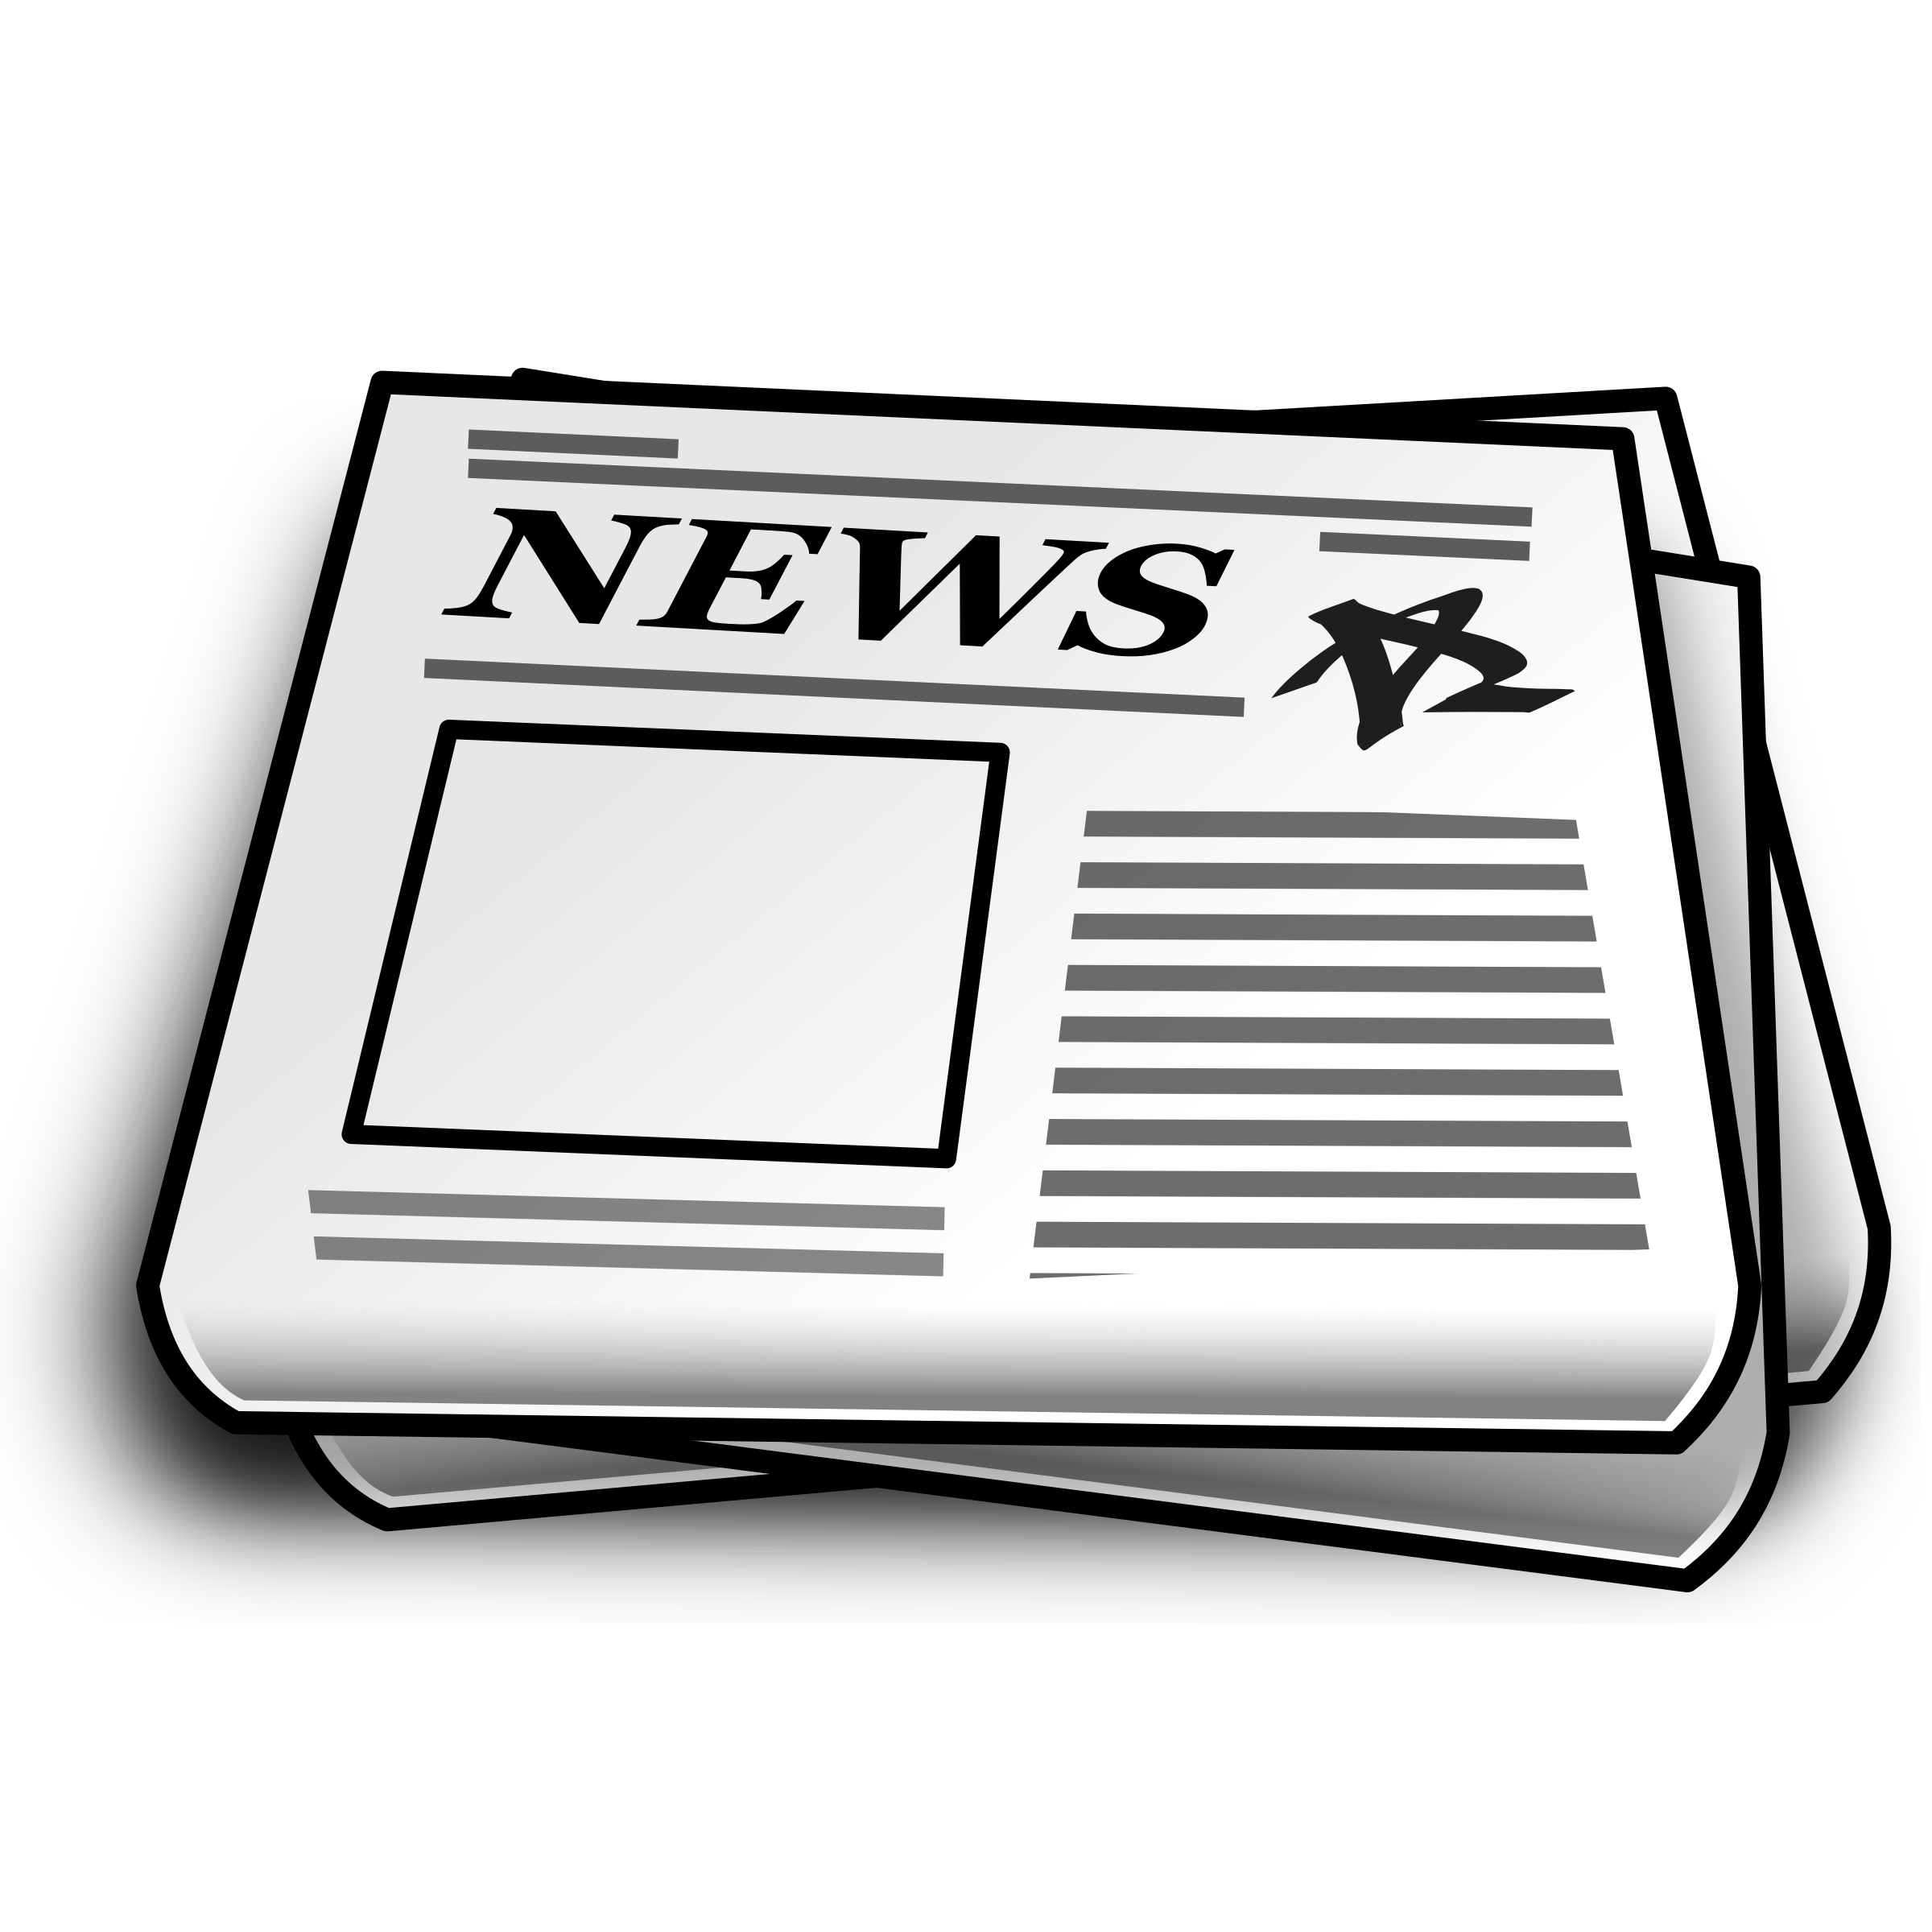 Newspaper clipart black and white clipart images gallery for.